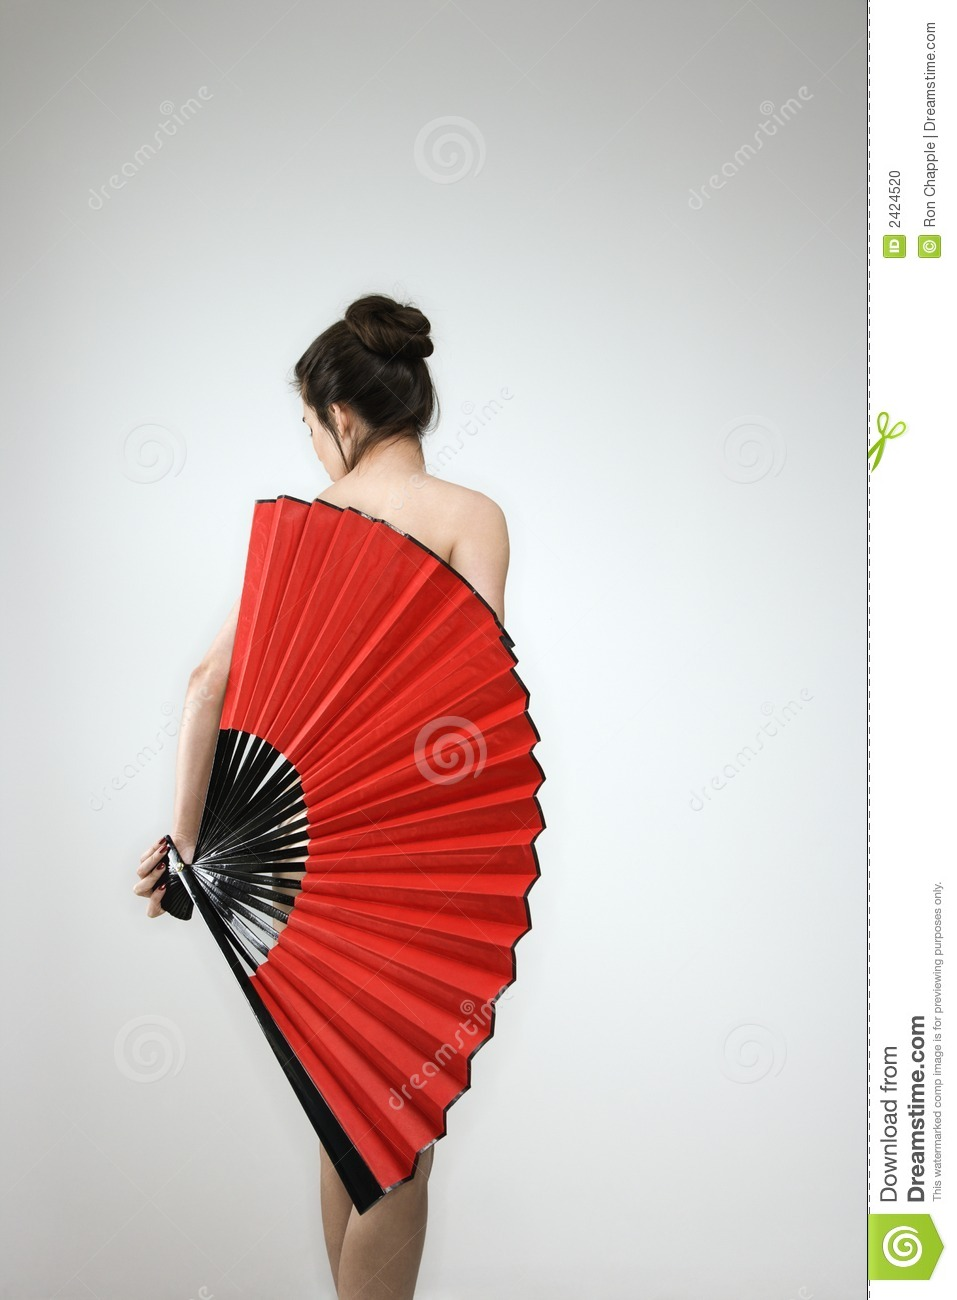 Nude Woman With Fan Stock Photo - Image 2424520-7913